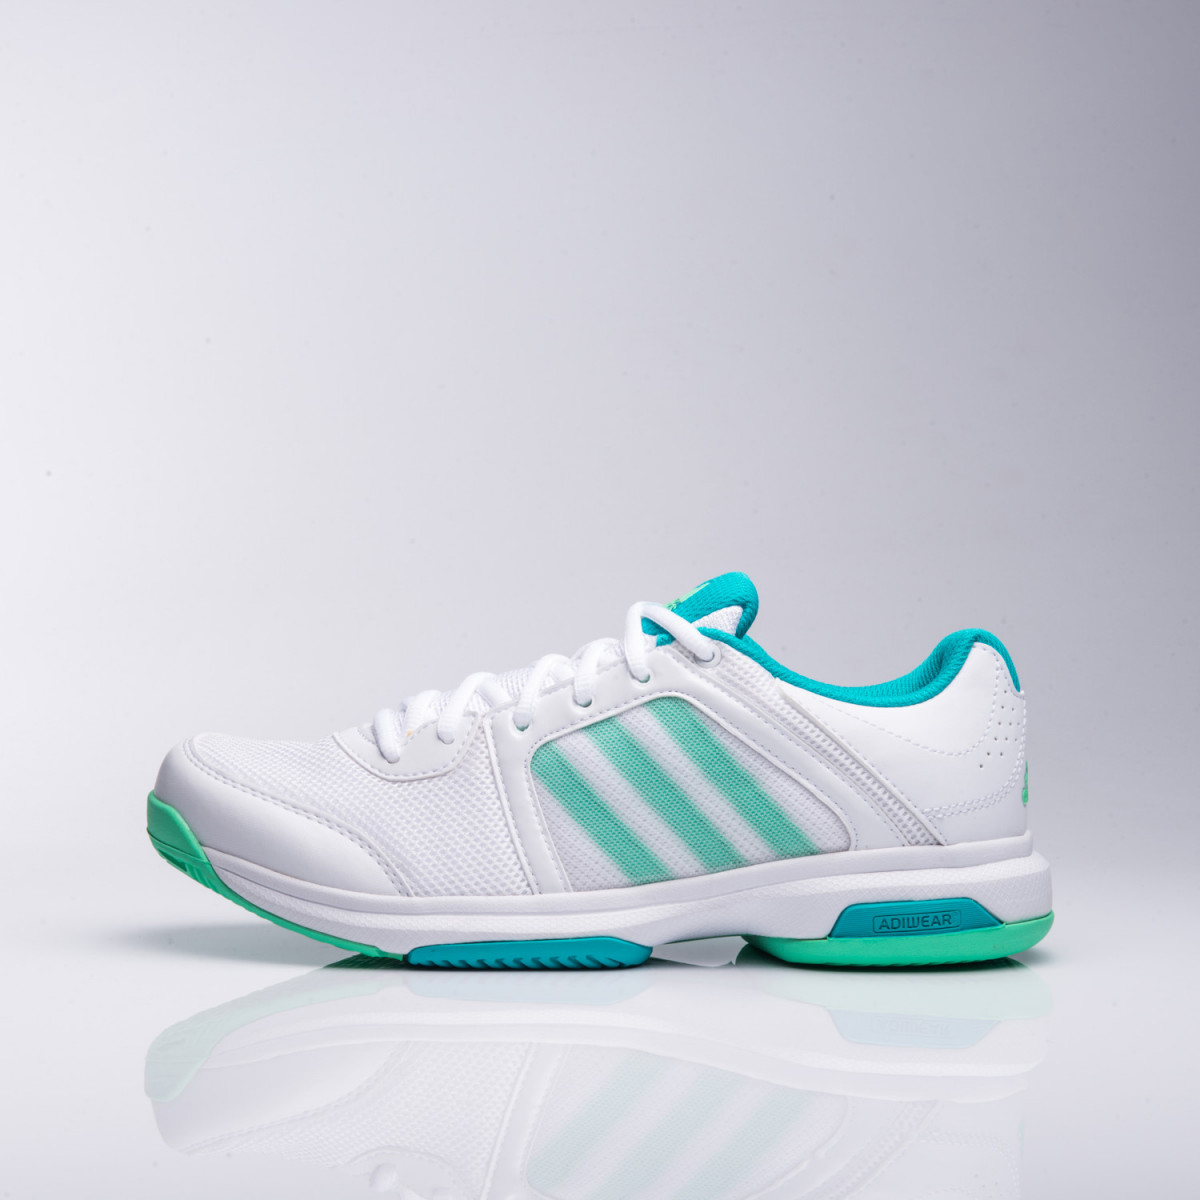 ZAPATILLAS ADIDAS BARRICADE ASPIRE STR